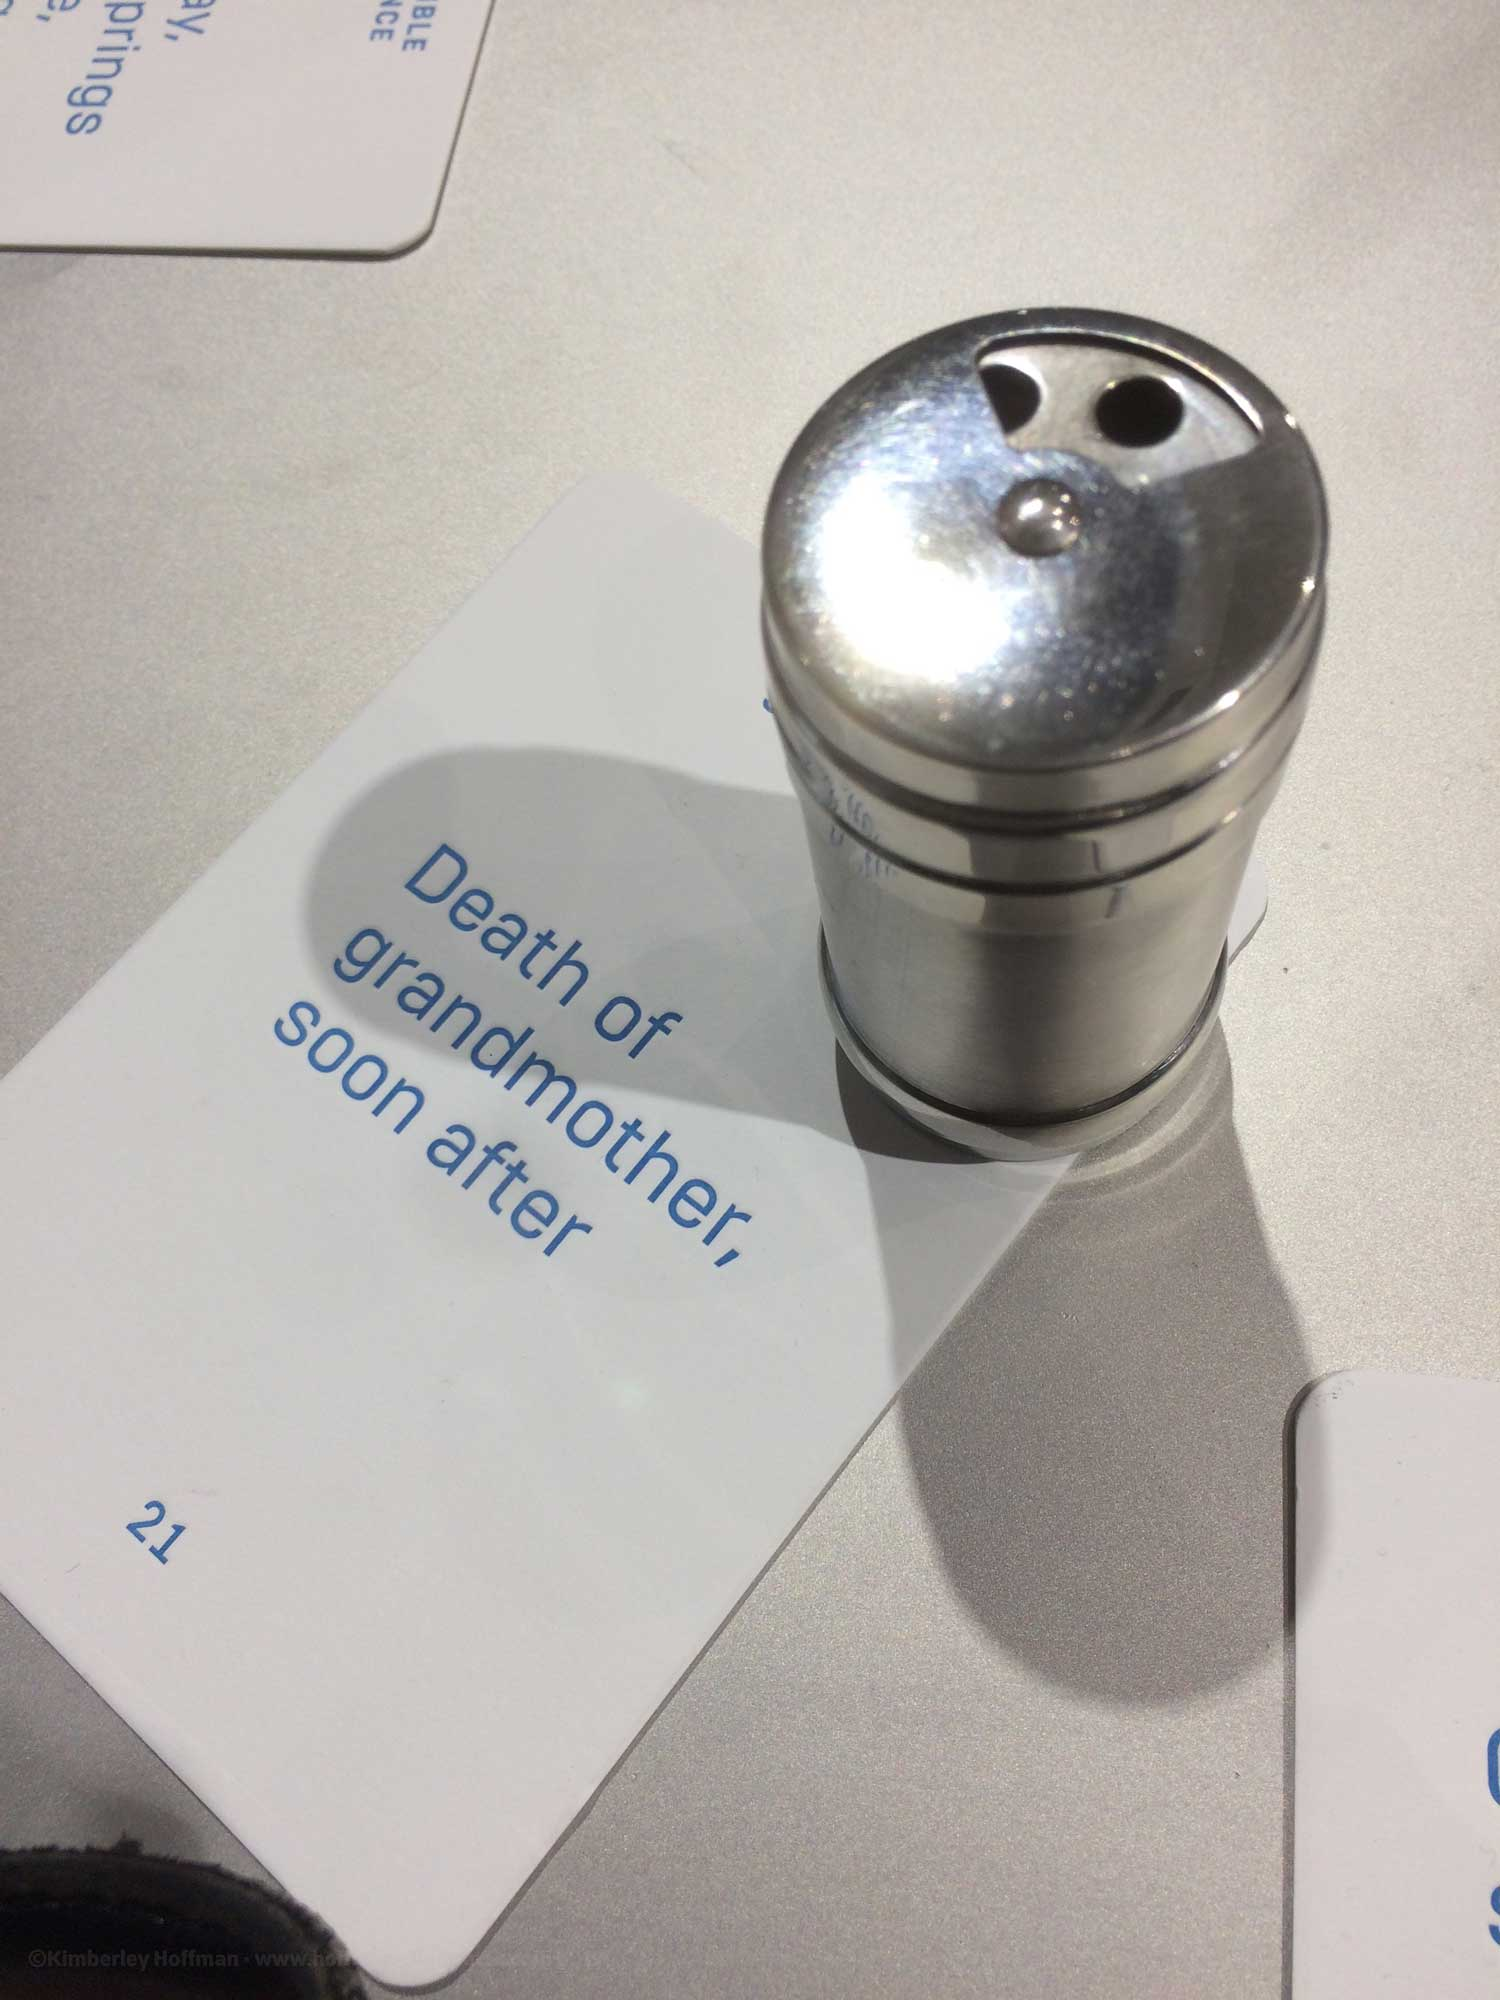 "Photo of a small stainless steel spice jar and a card labelled ""Death of grandmother soon after"""